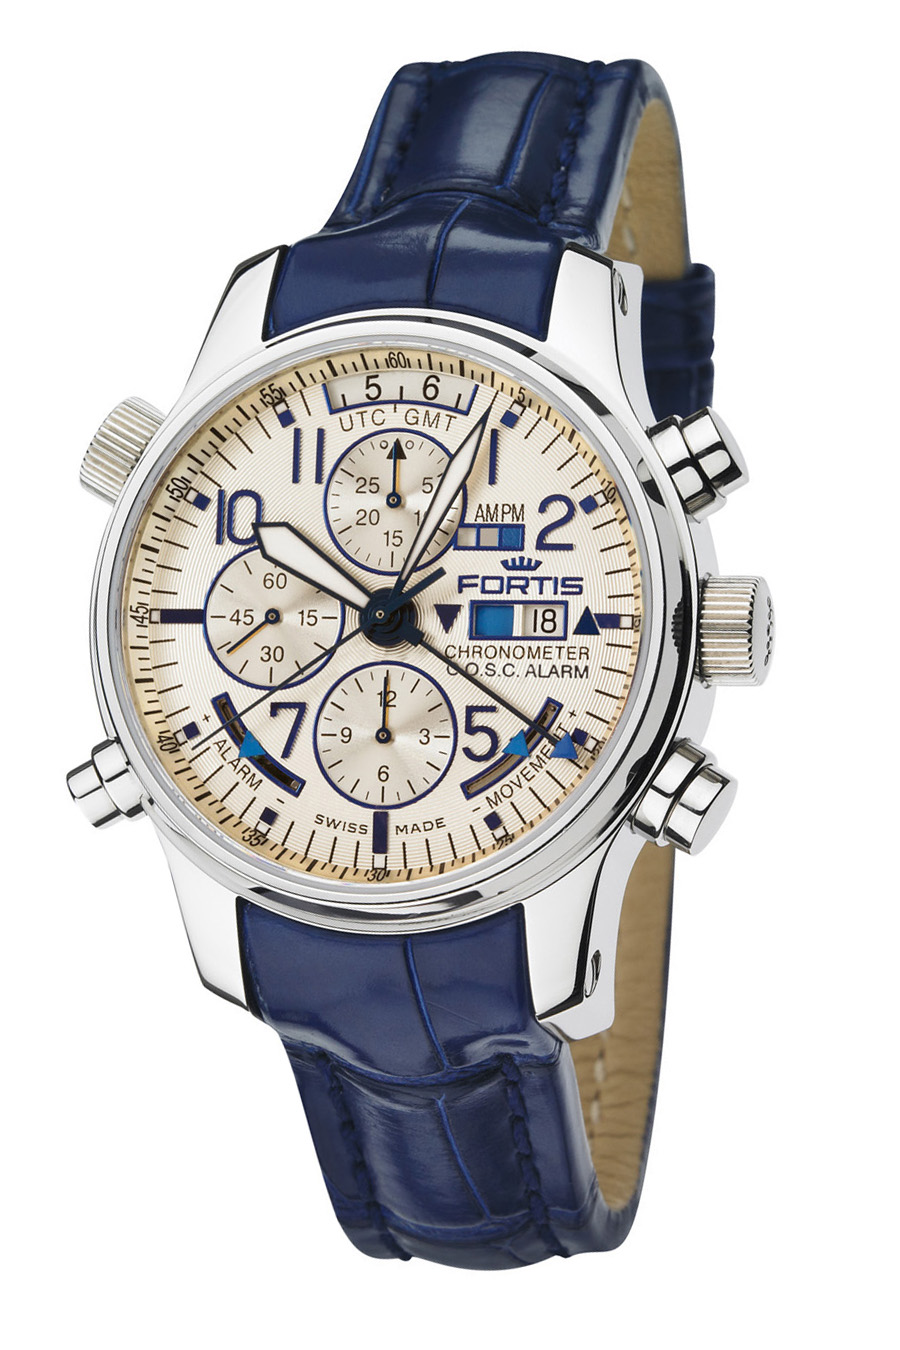 Luxury watches gevril group for Luxury watches